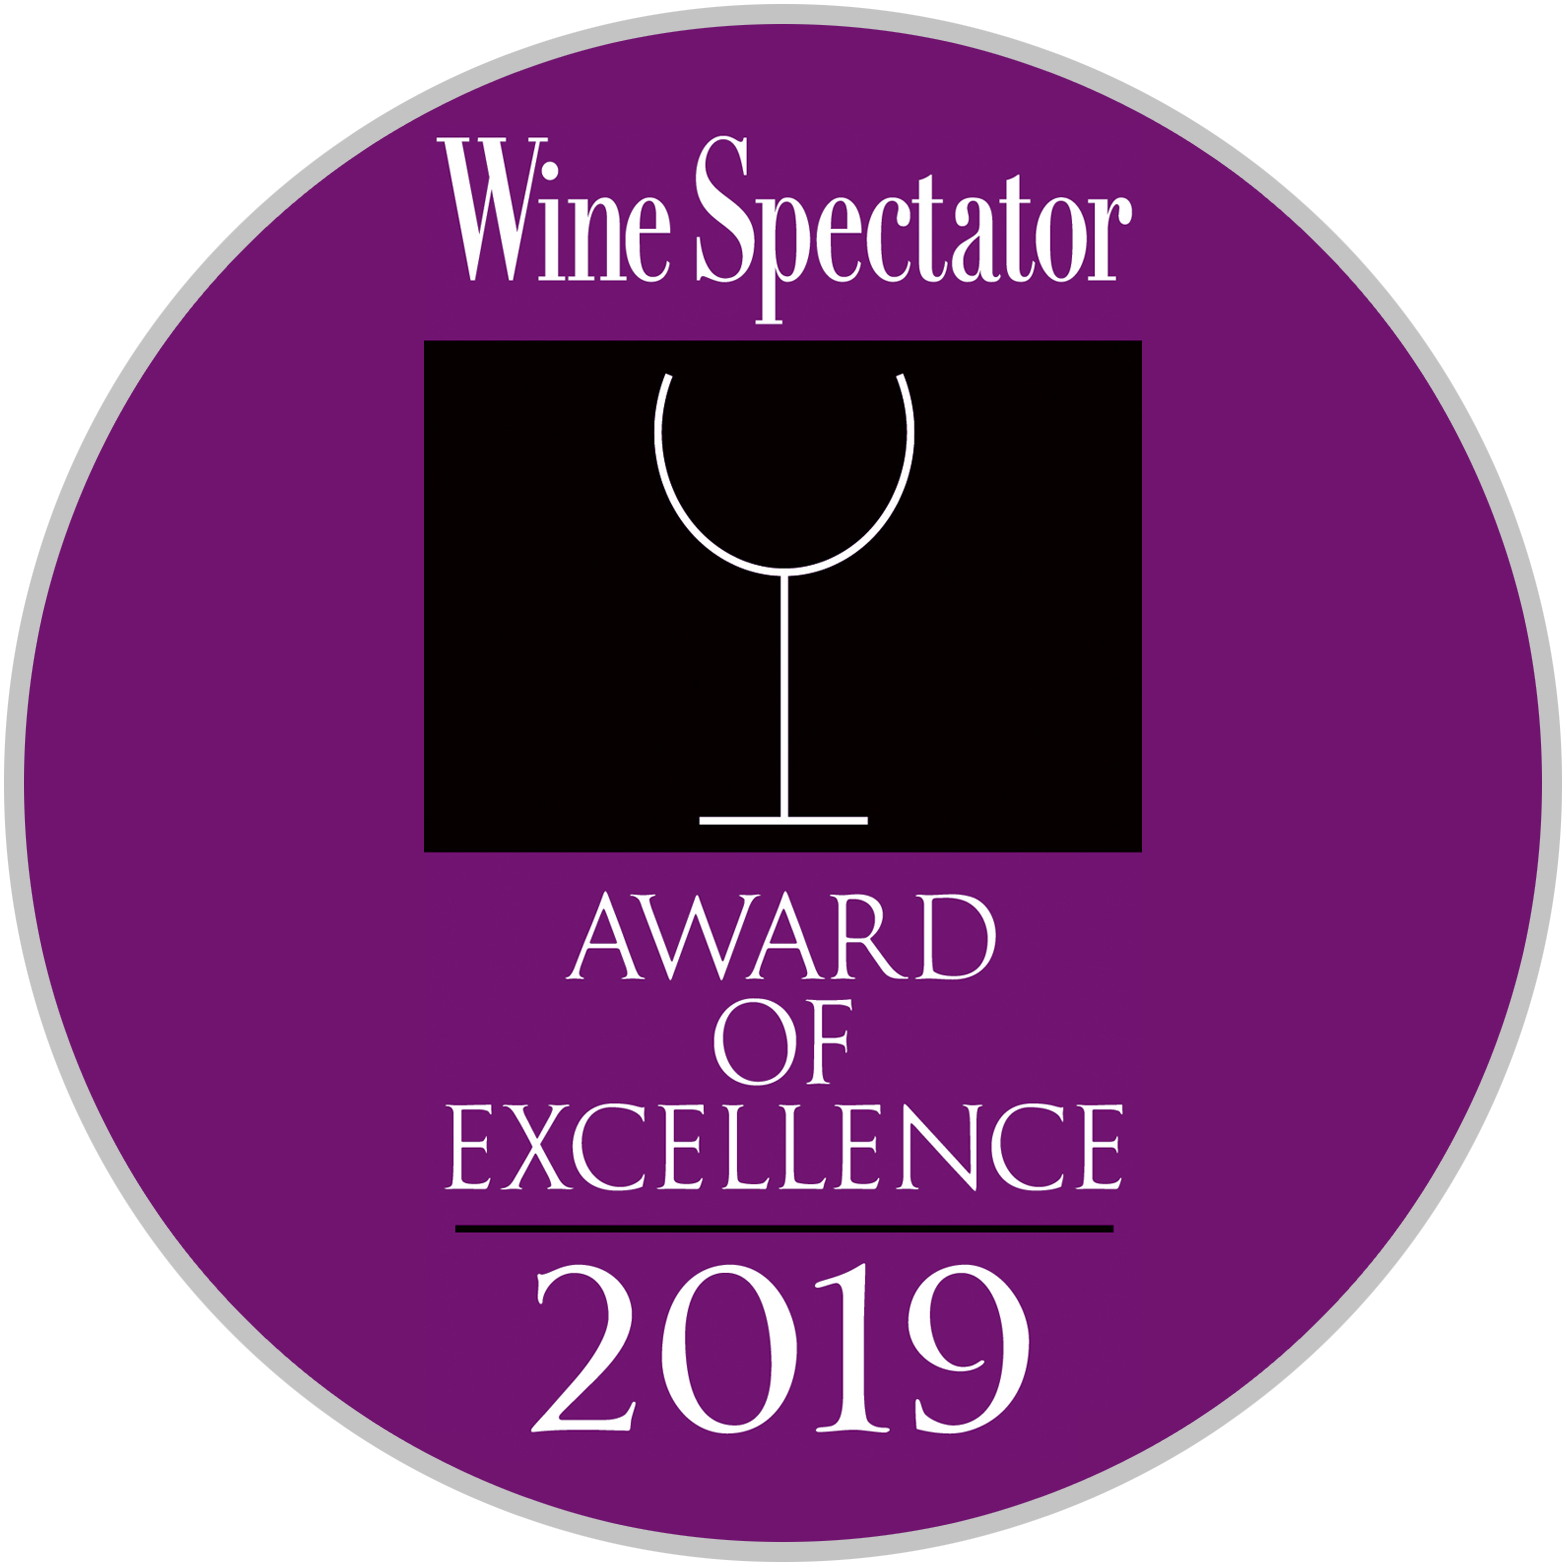 wine spectator award of excellence 2019 - Rusty Scupper